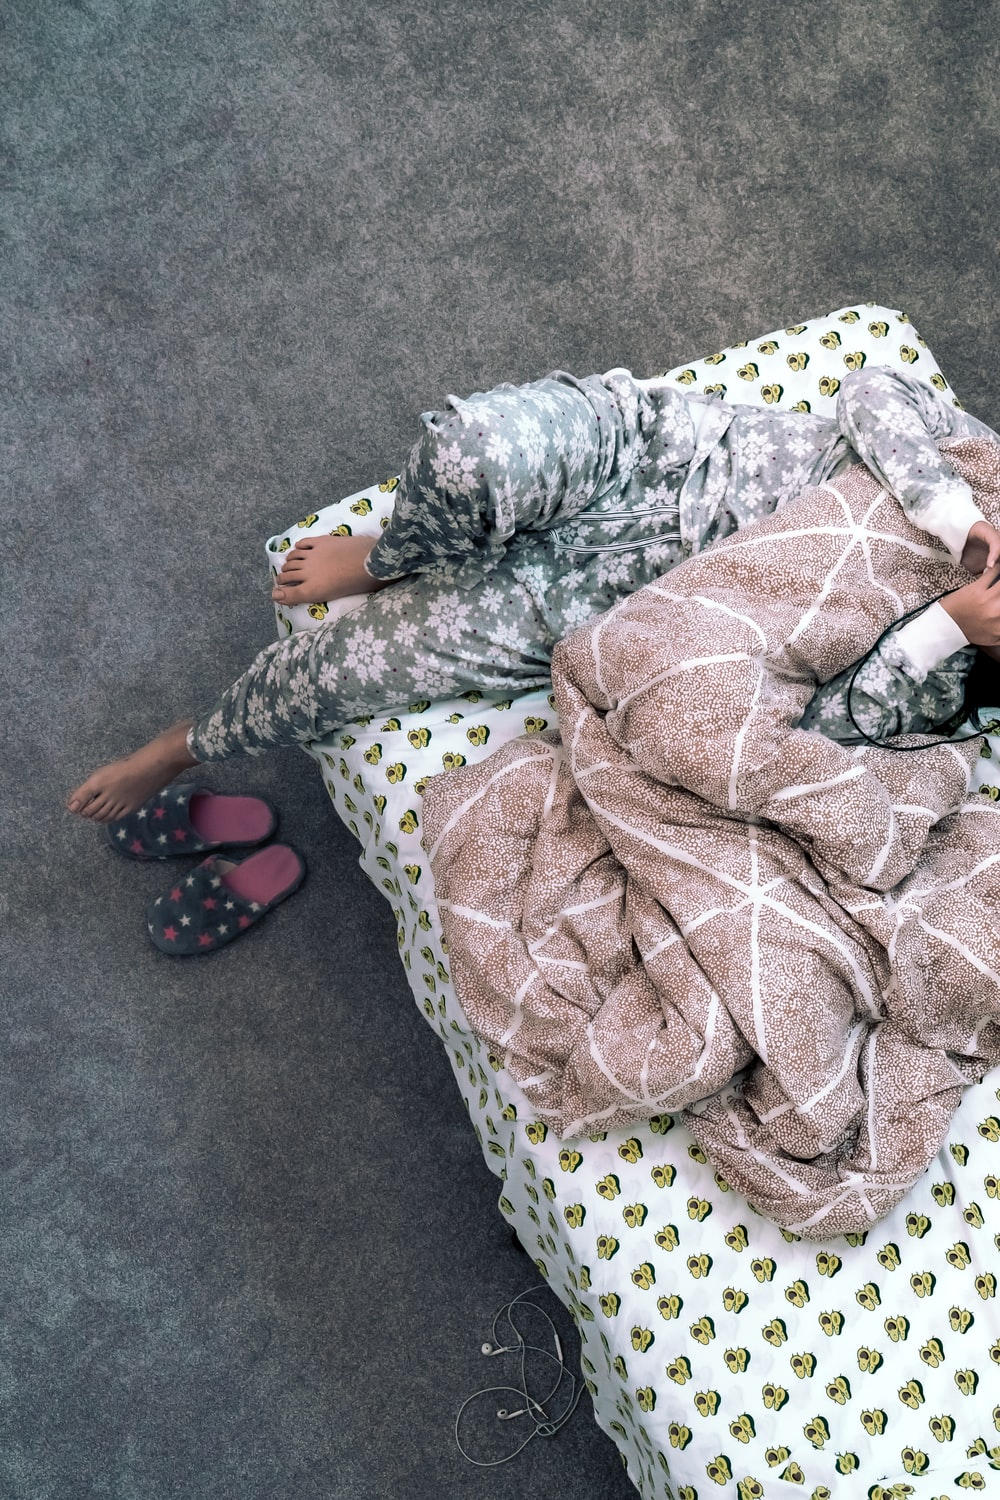 person lying in bed with gray blanket